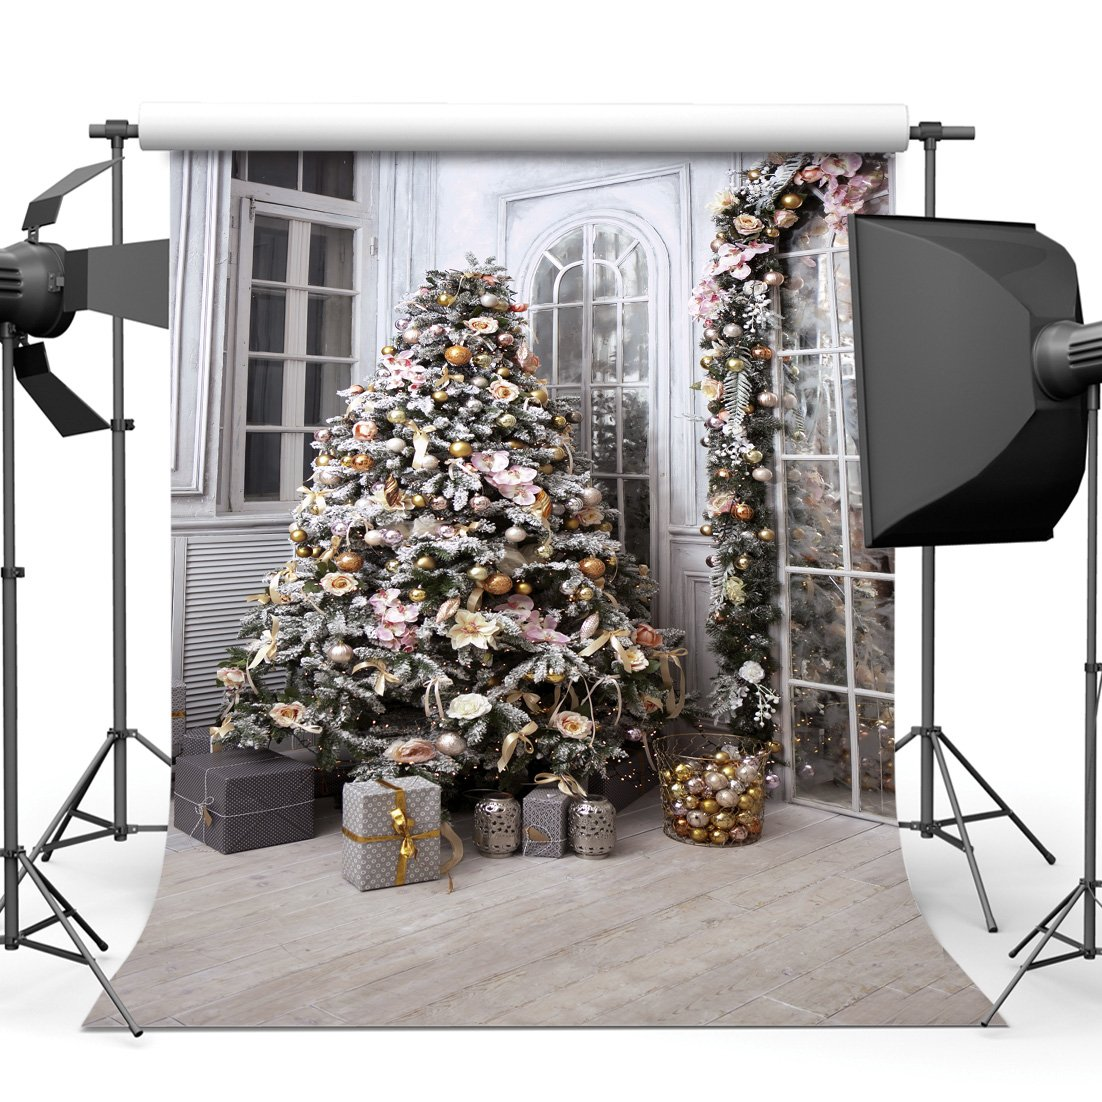 Sjoloon 10x10ft Christmas Tree And Gifts Vinyl Photography Backdrops Photo Background Studio Prop 10842